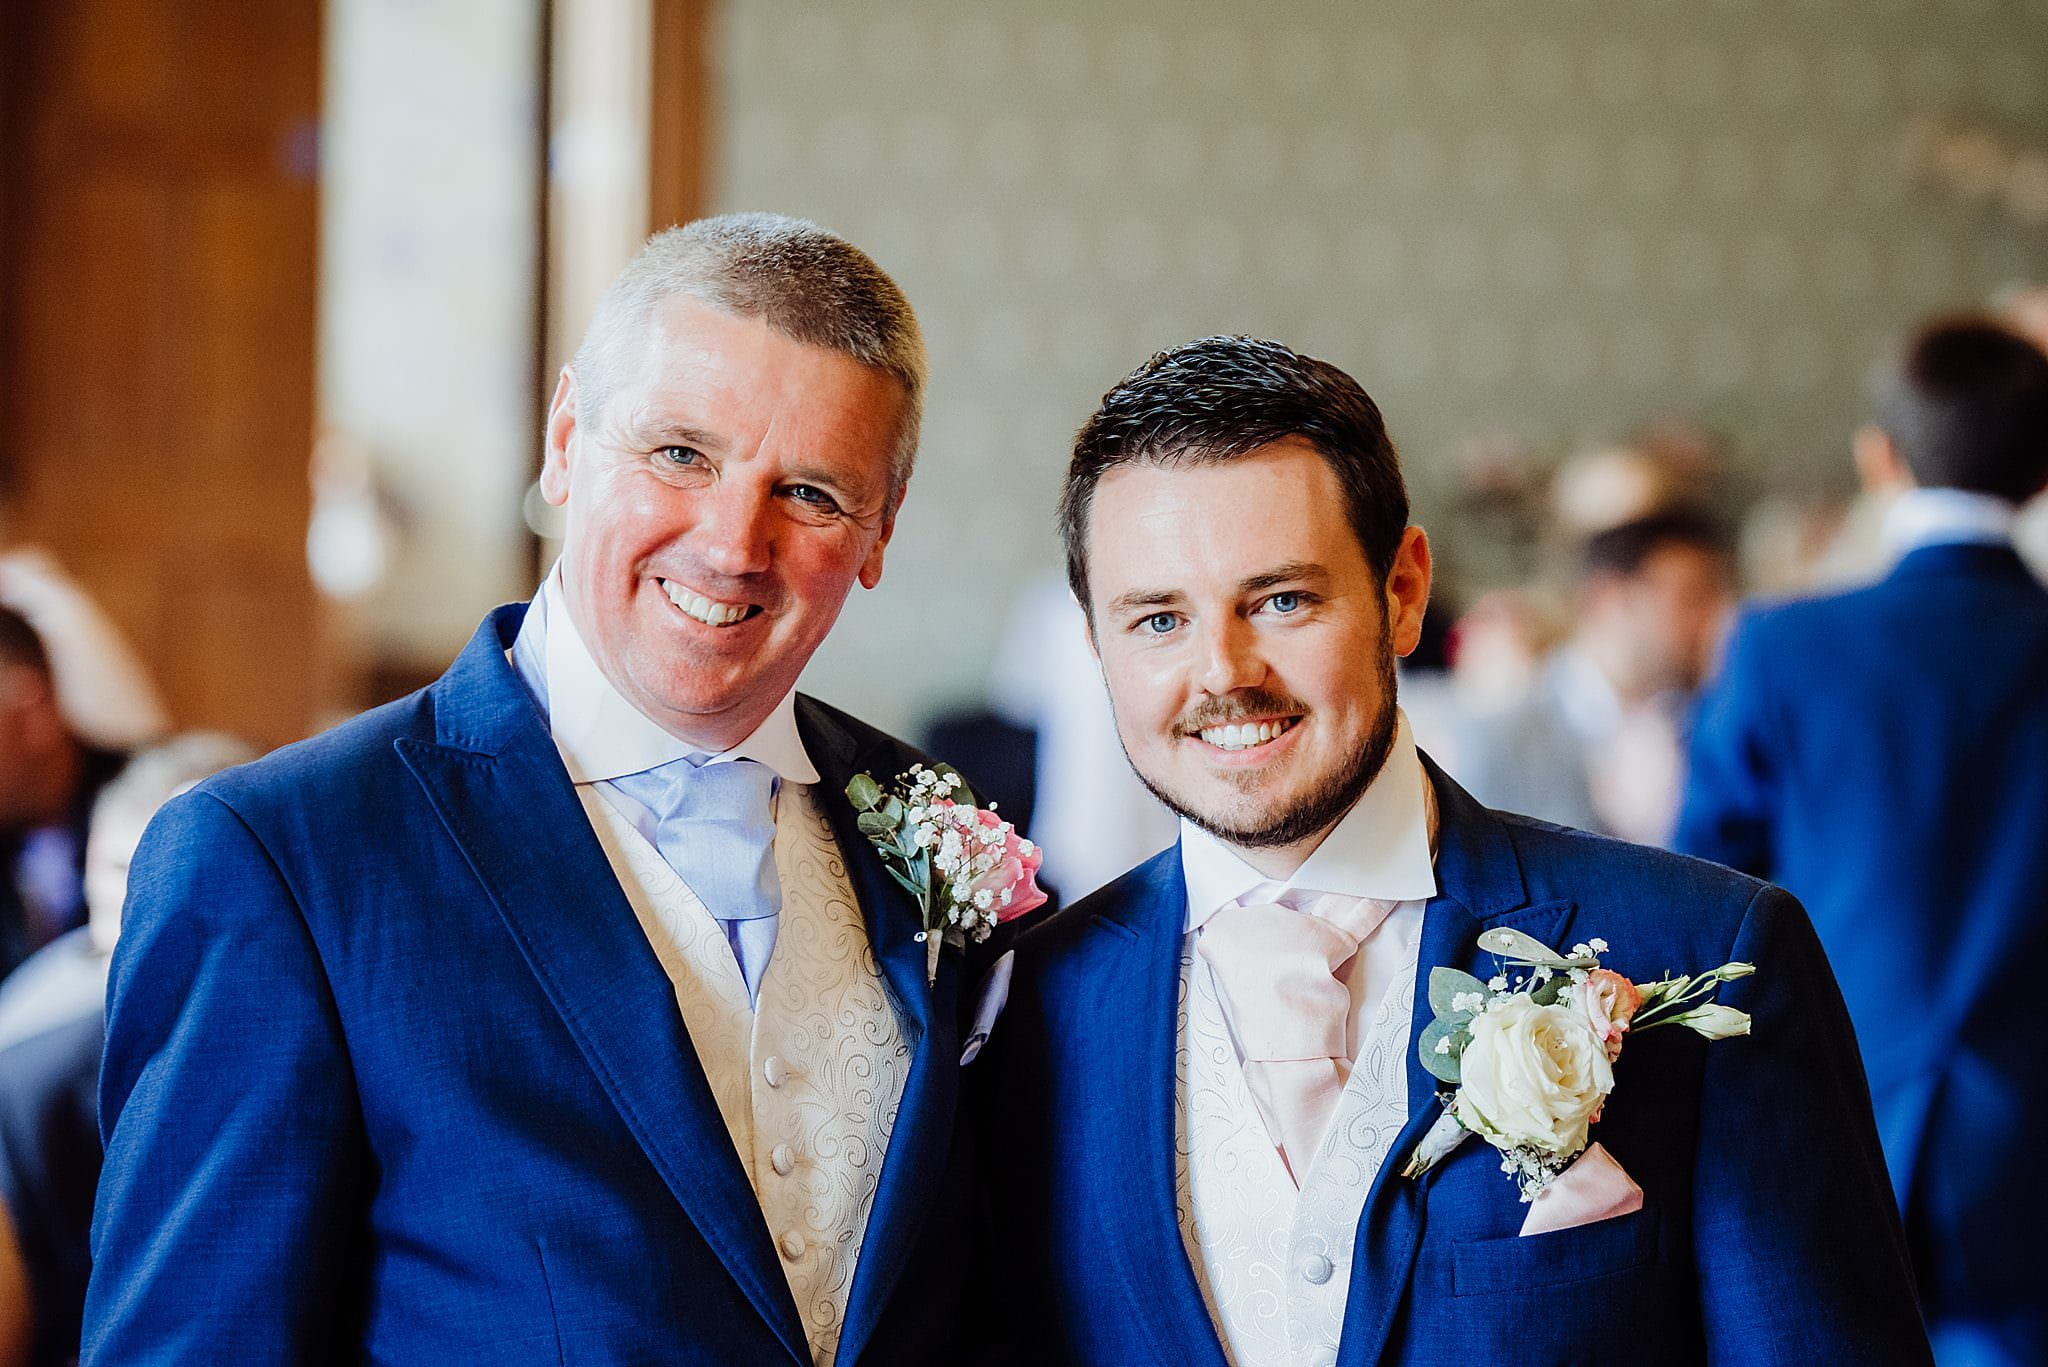 A smiling groom and his best man at a wedding ceremony at Gregnog Hall